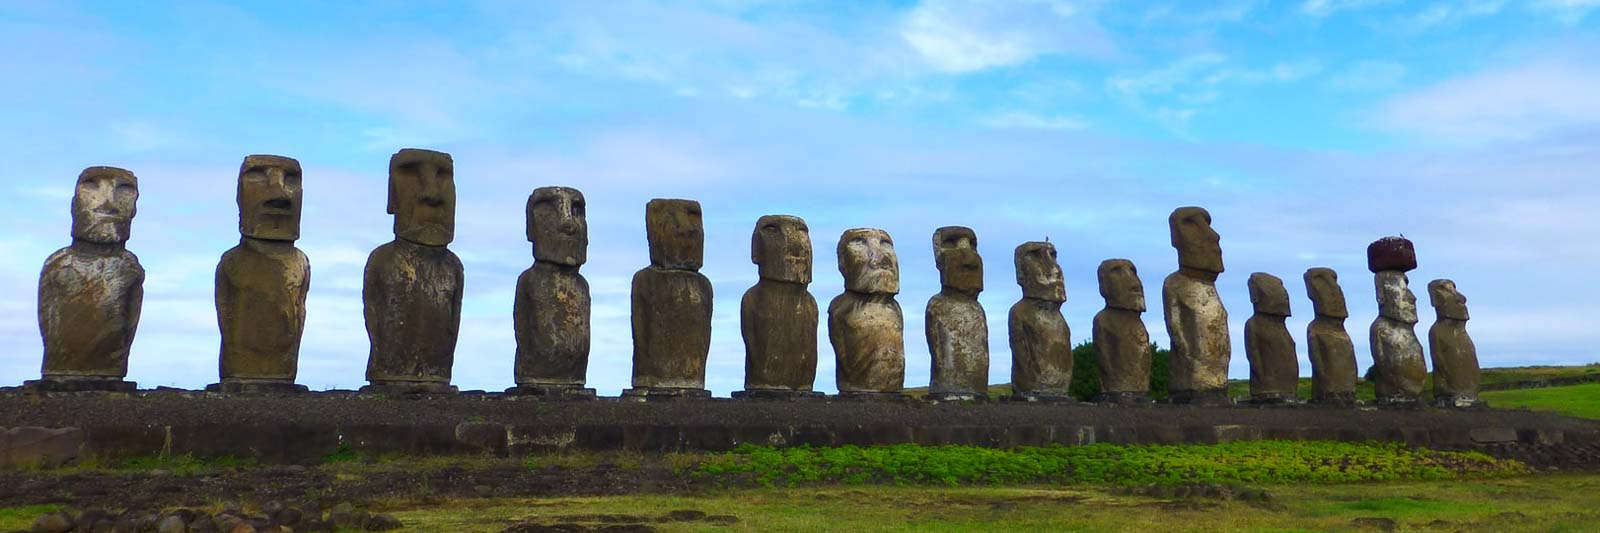 Easter Island heads for Chile travel tips